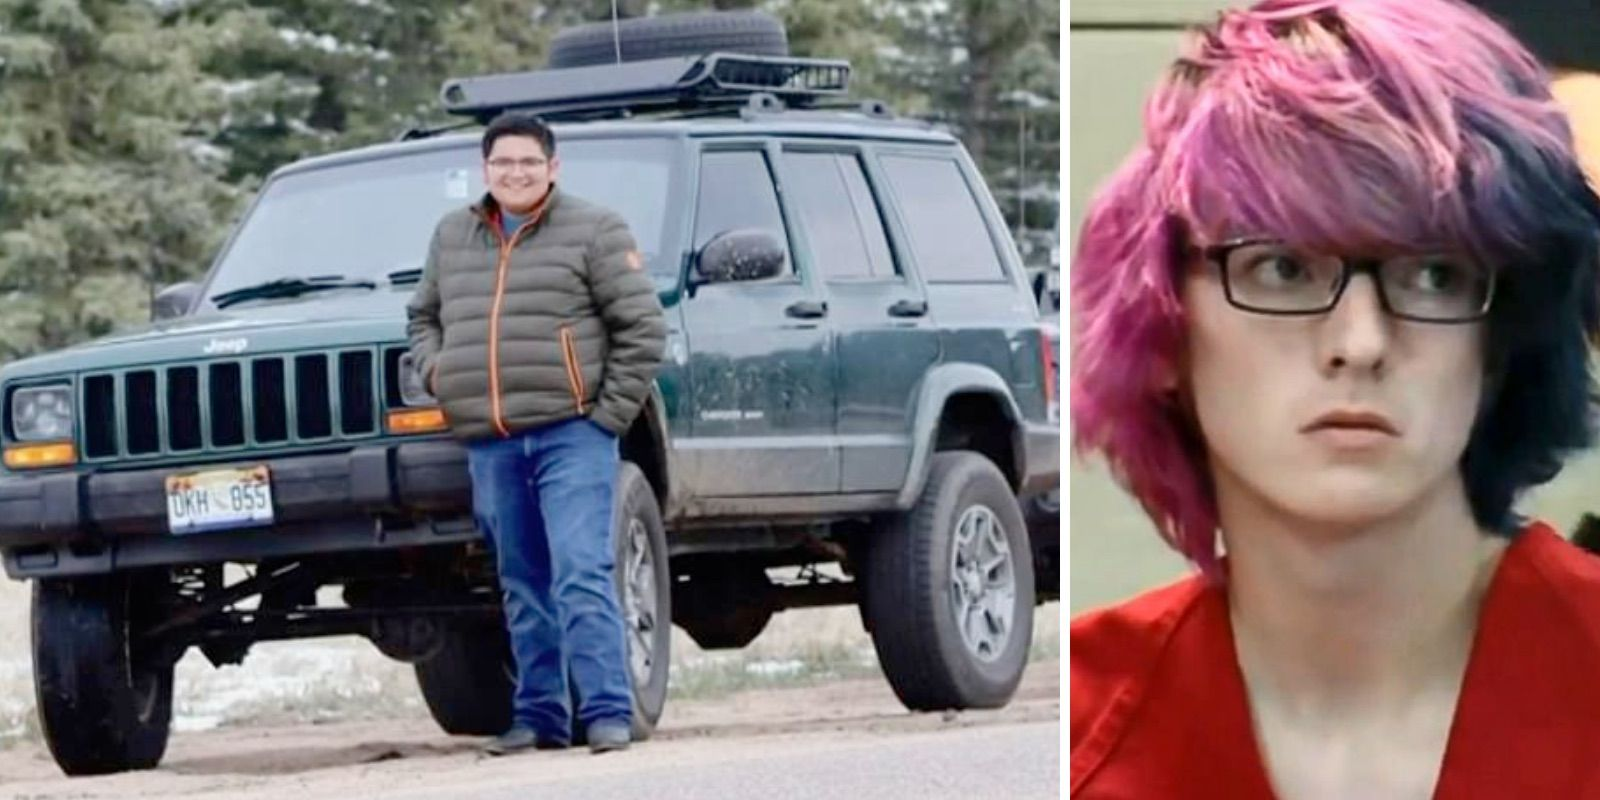 Social justice advocates believe school shooter should be set free because of trans identity